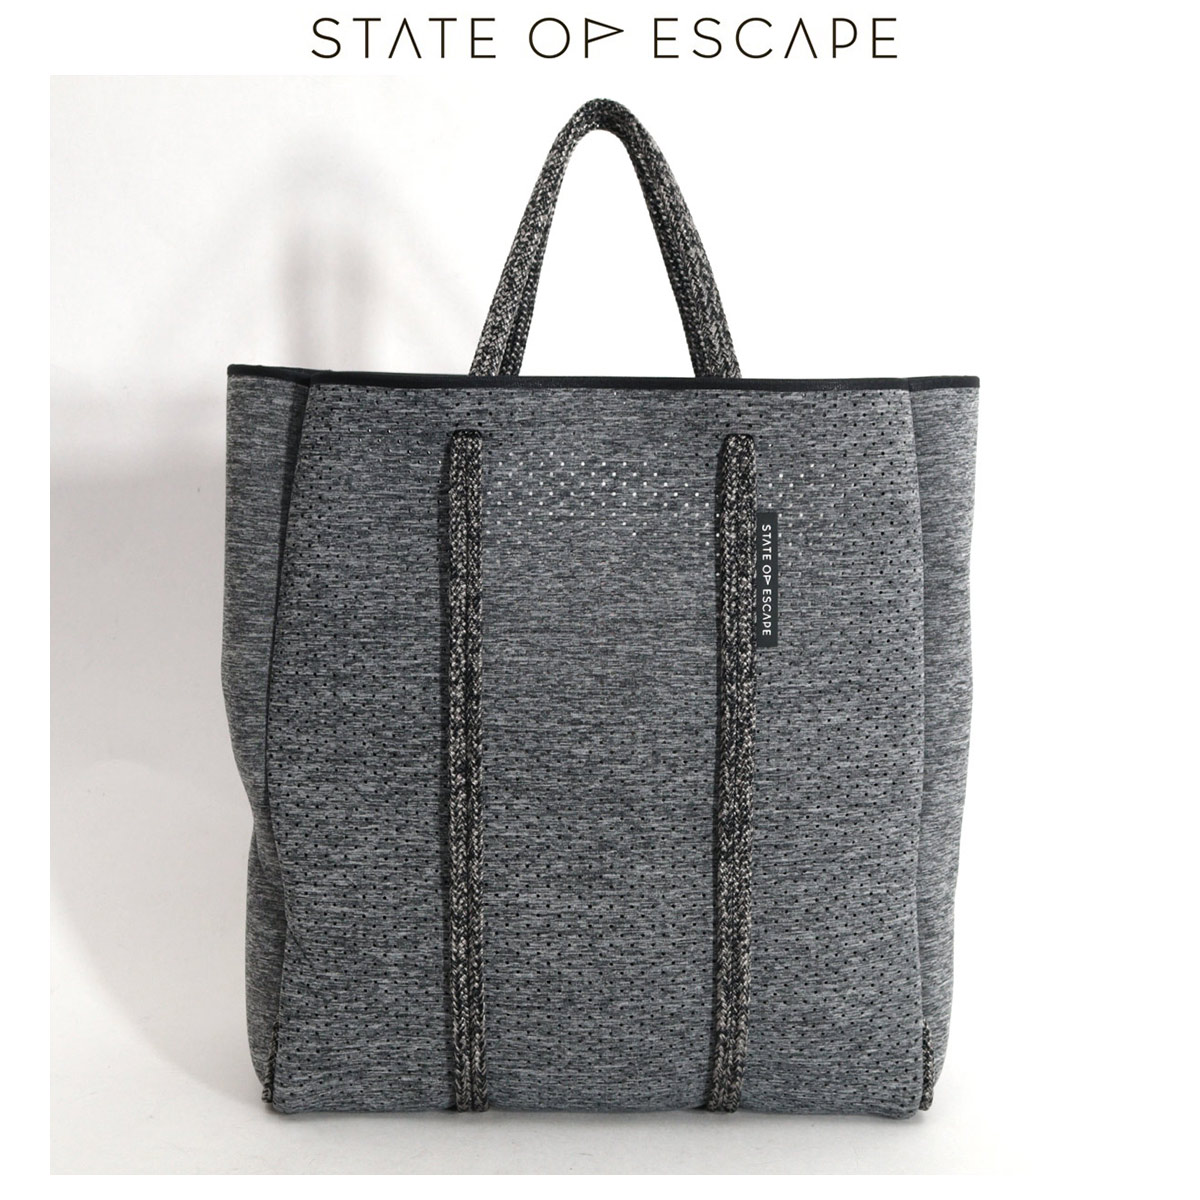 STATE OF ESCAPE MAGAZINE TOTE(Ch Gray)トートバッグ